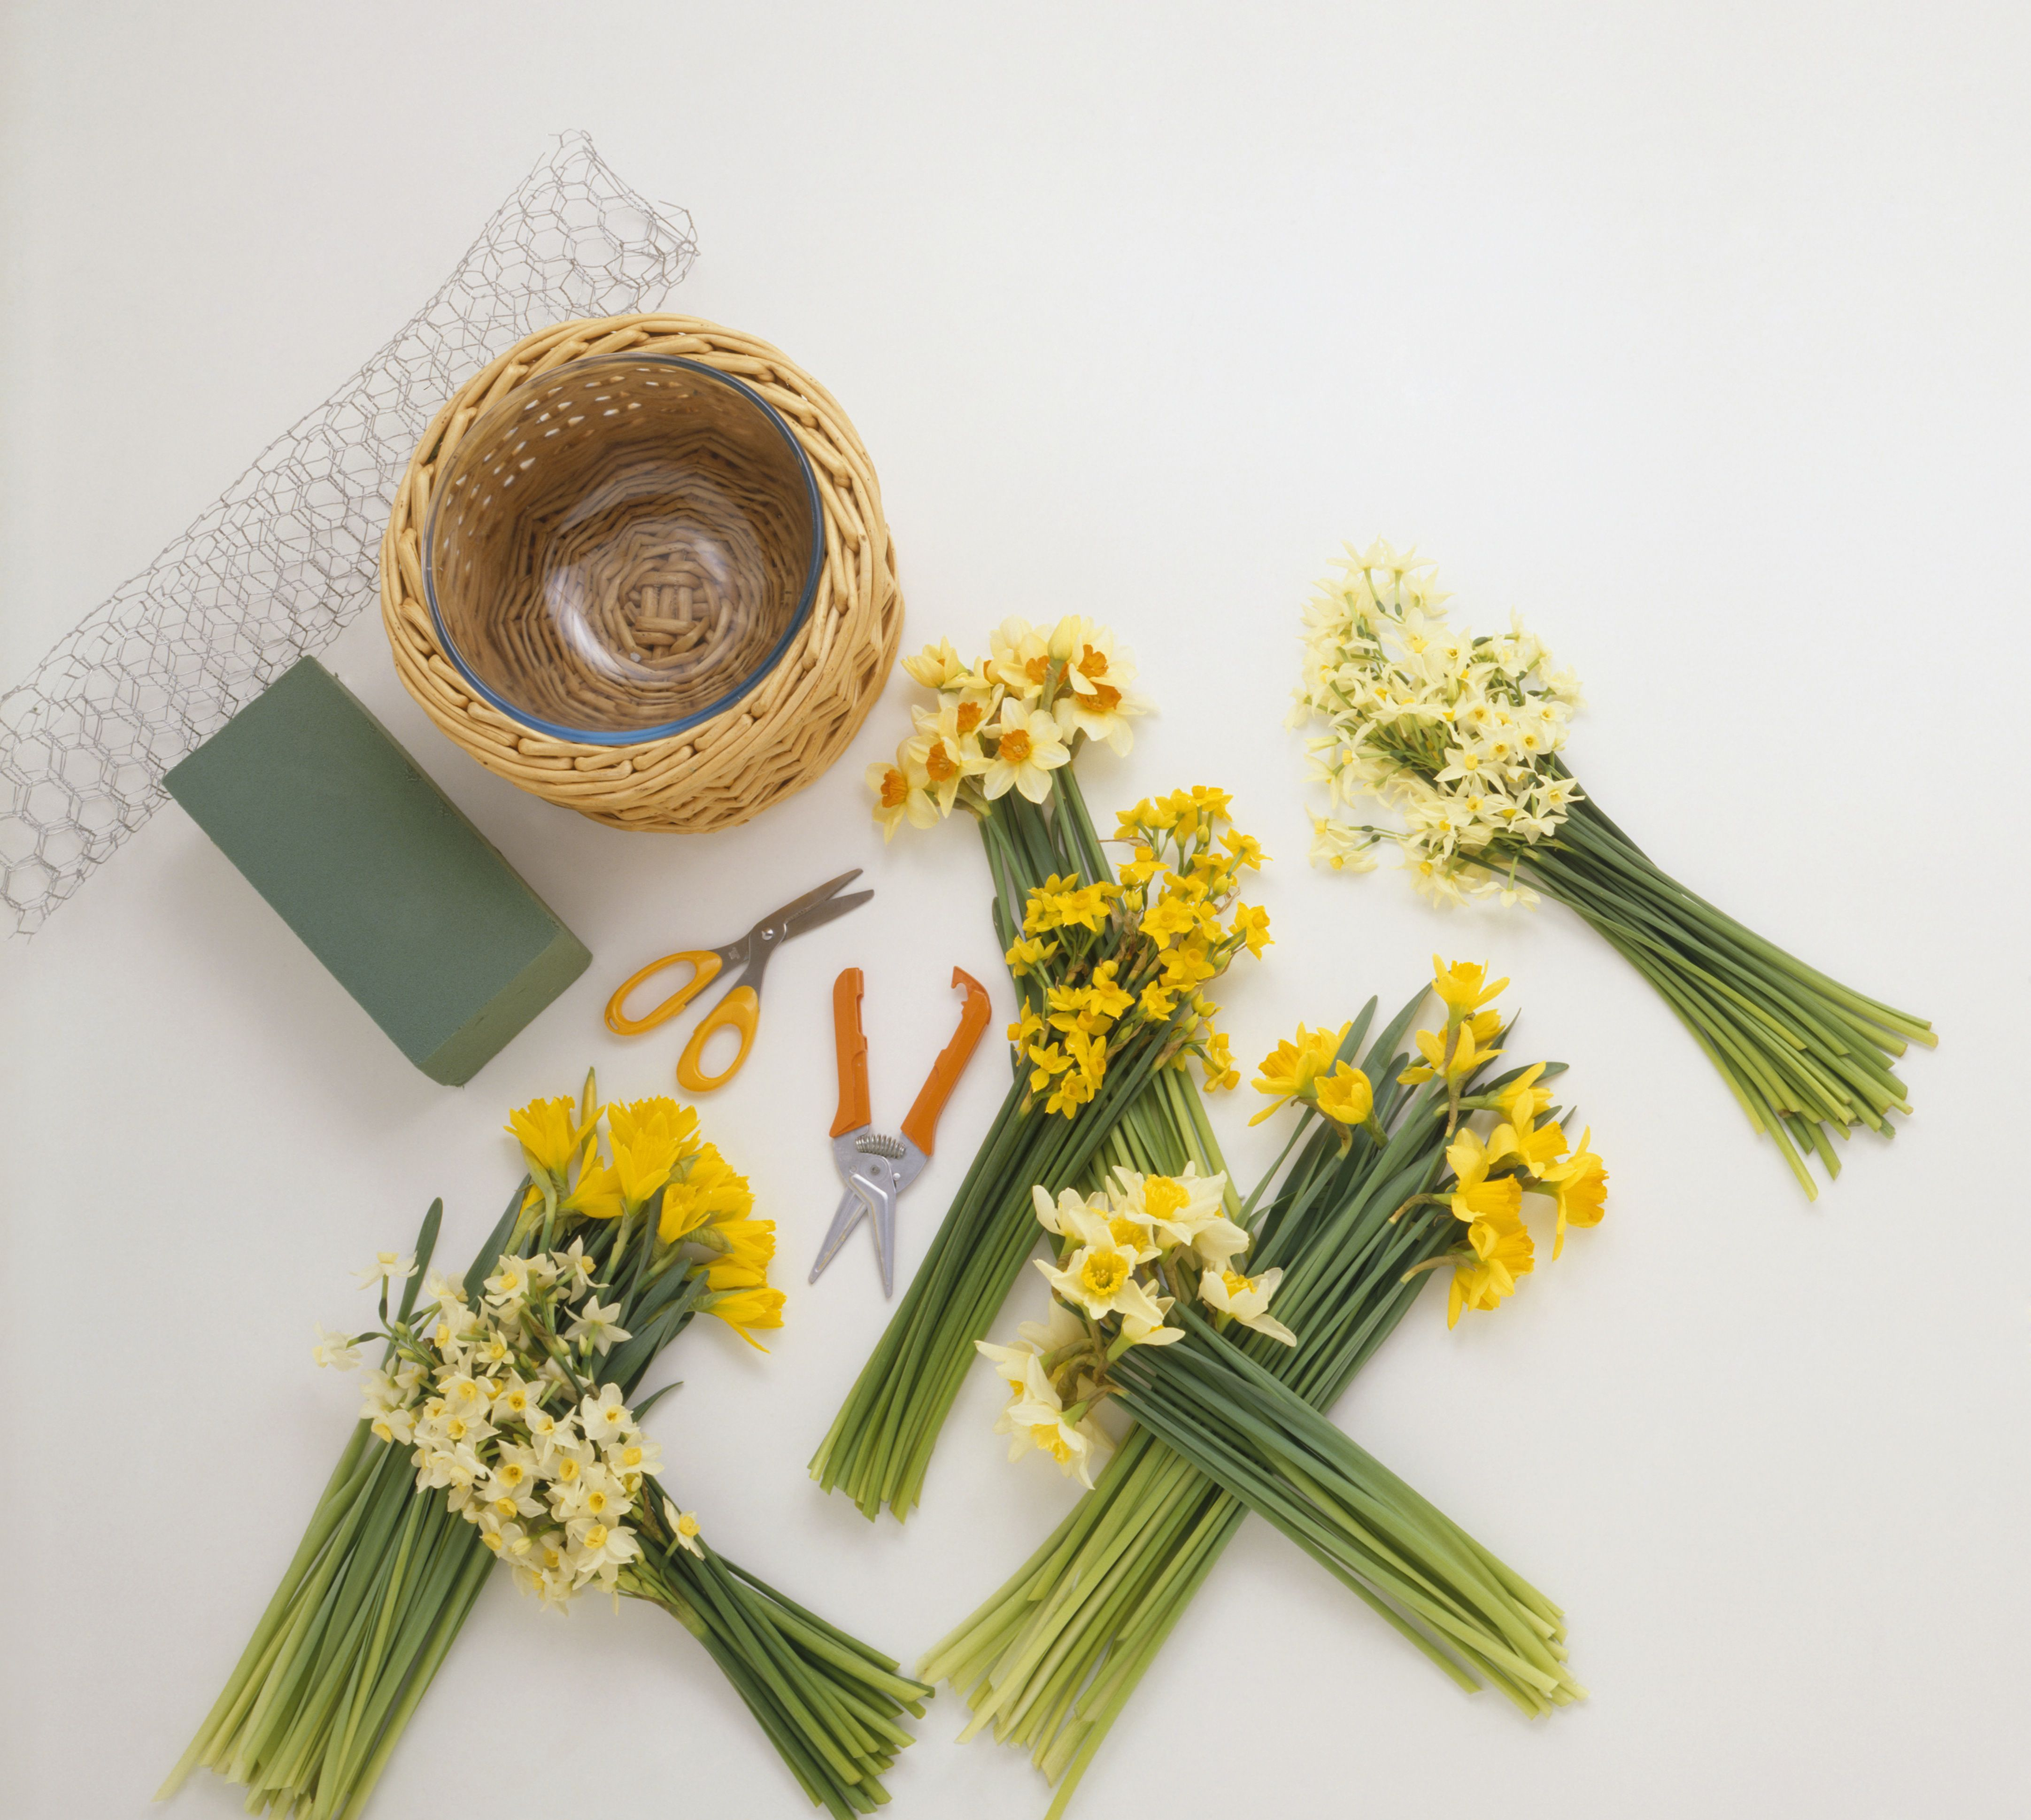 Basic Flower Arranging Supplies